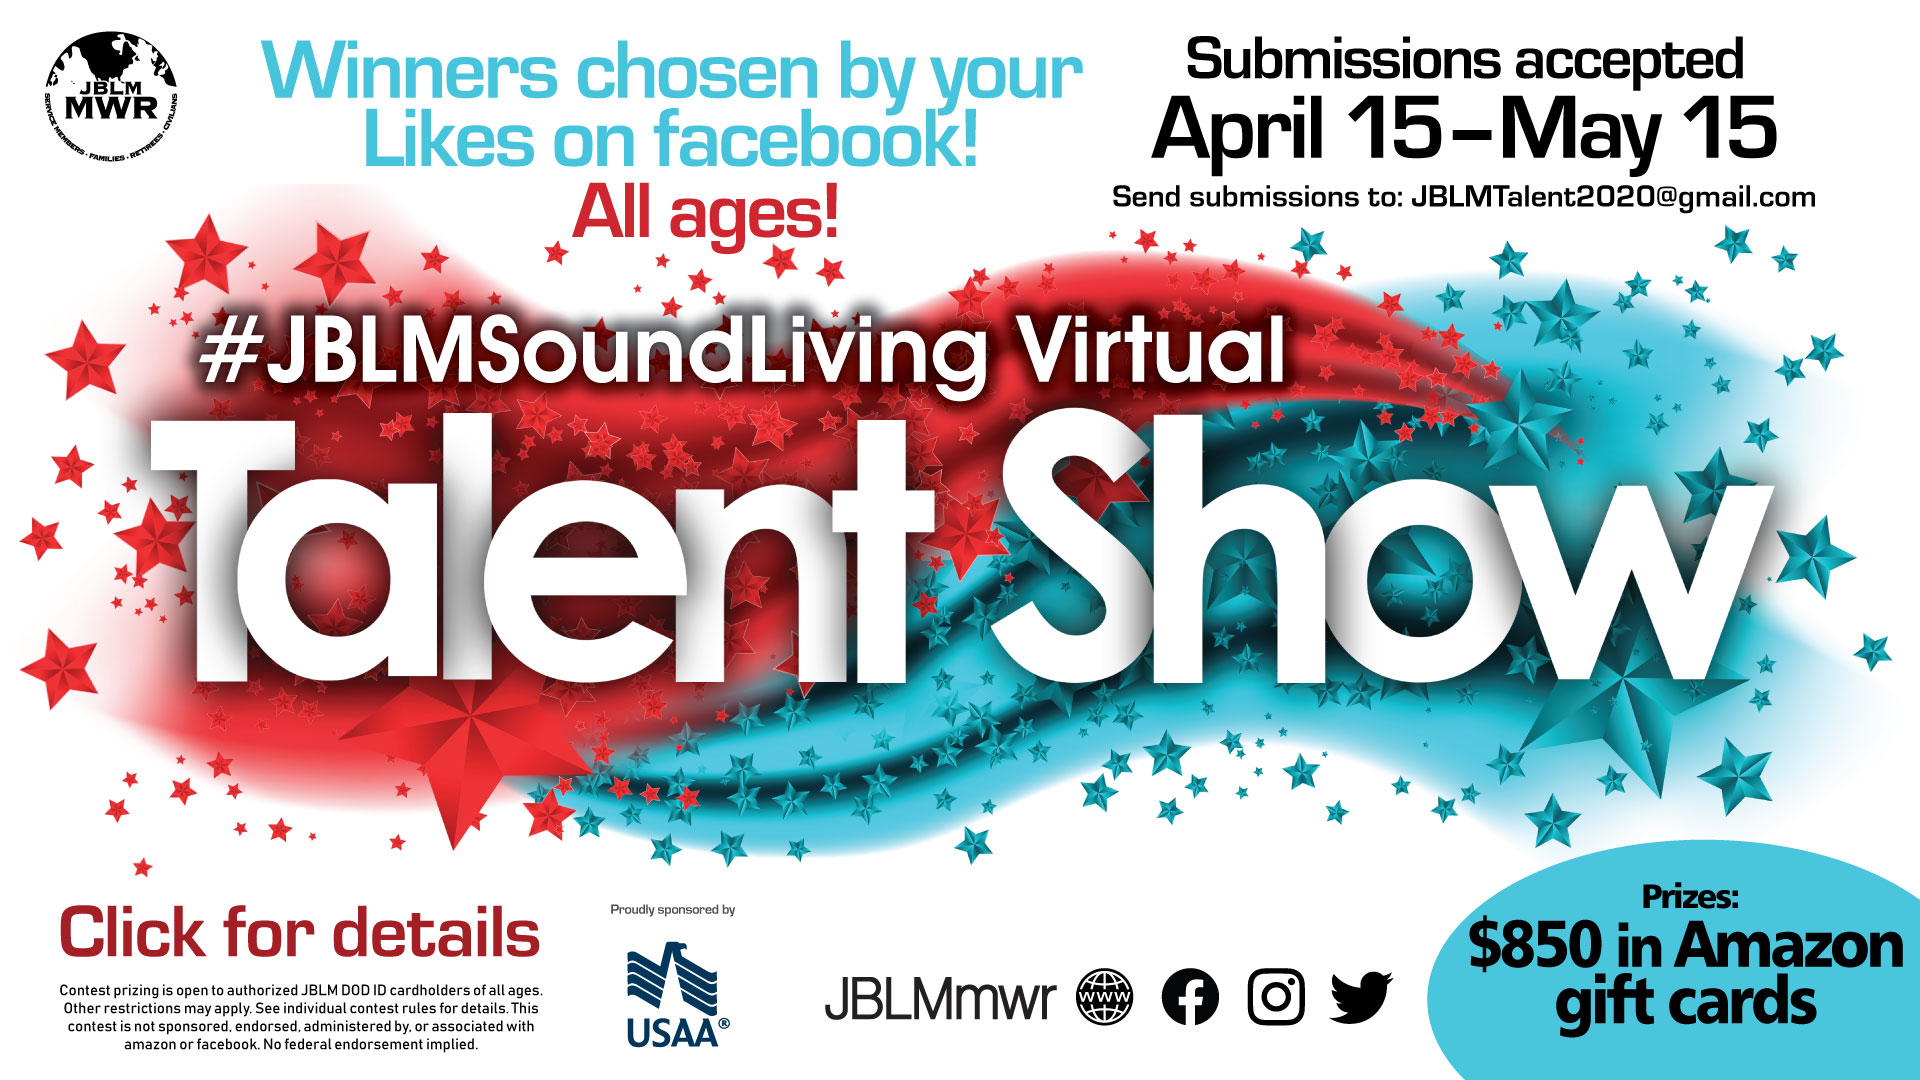 #JBLMSoundLiving Virtual Talent Show